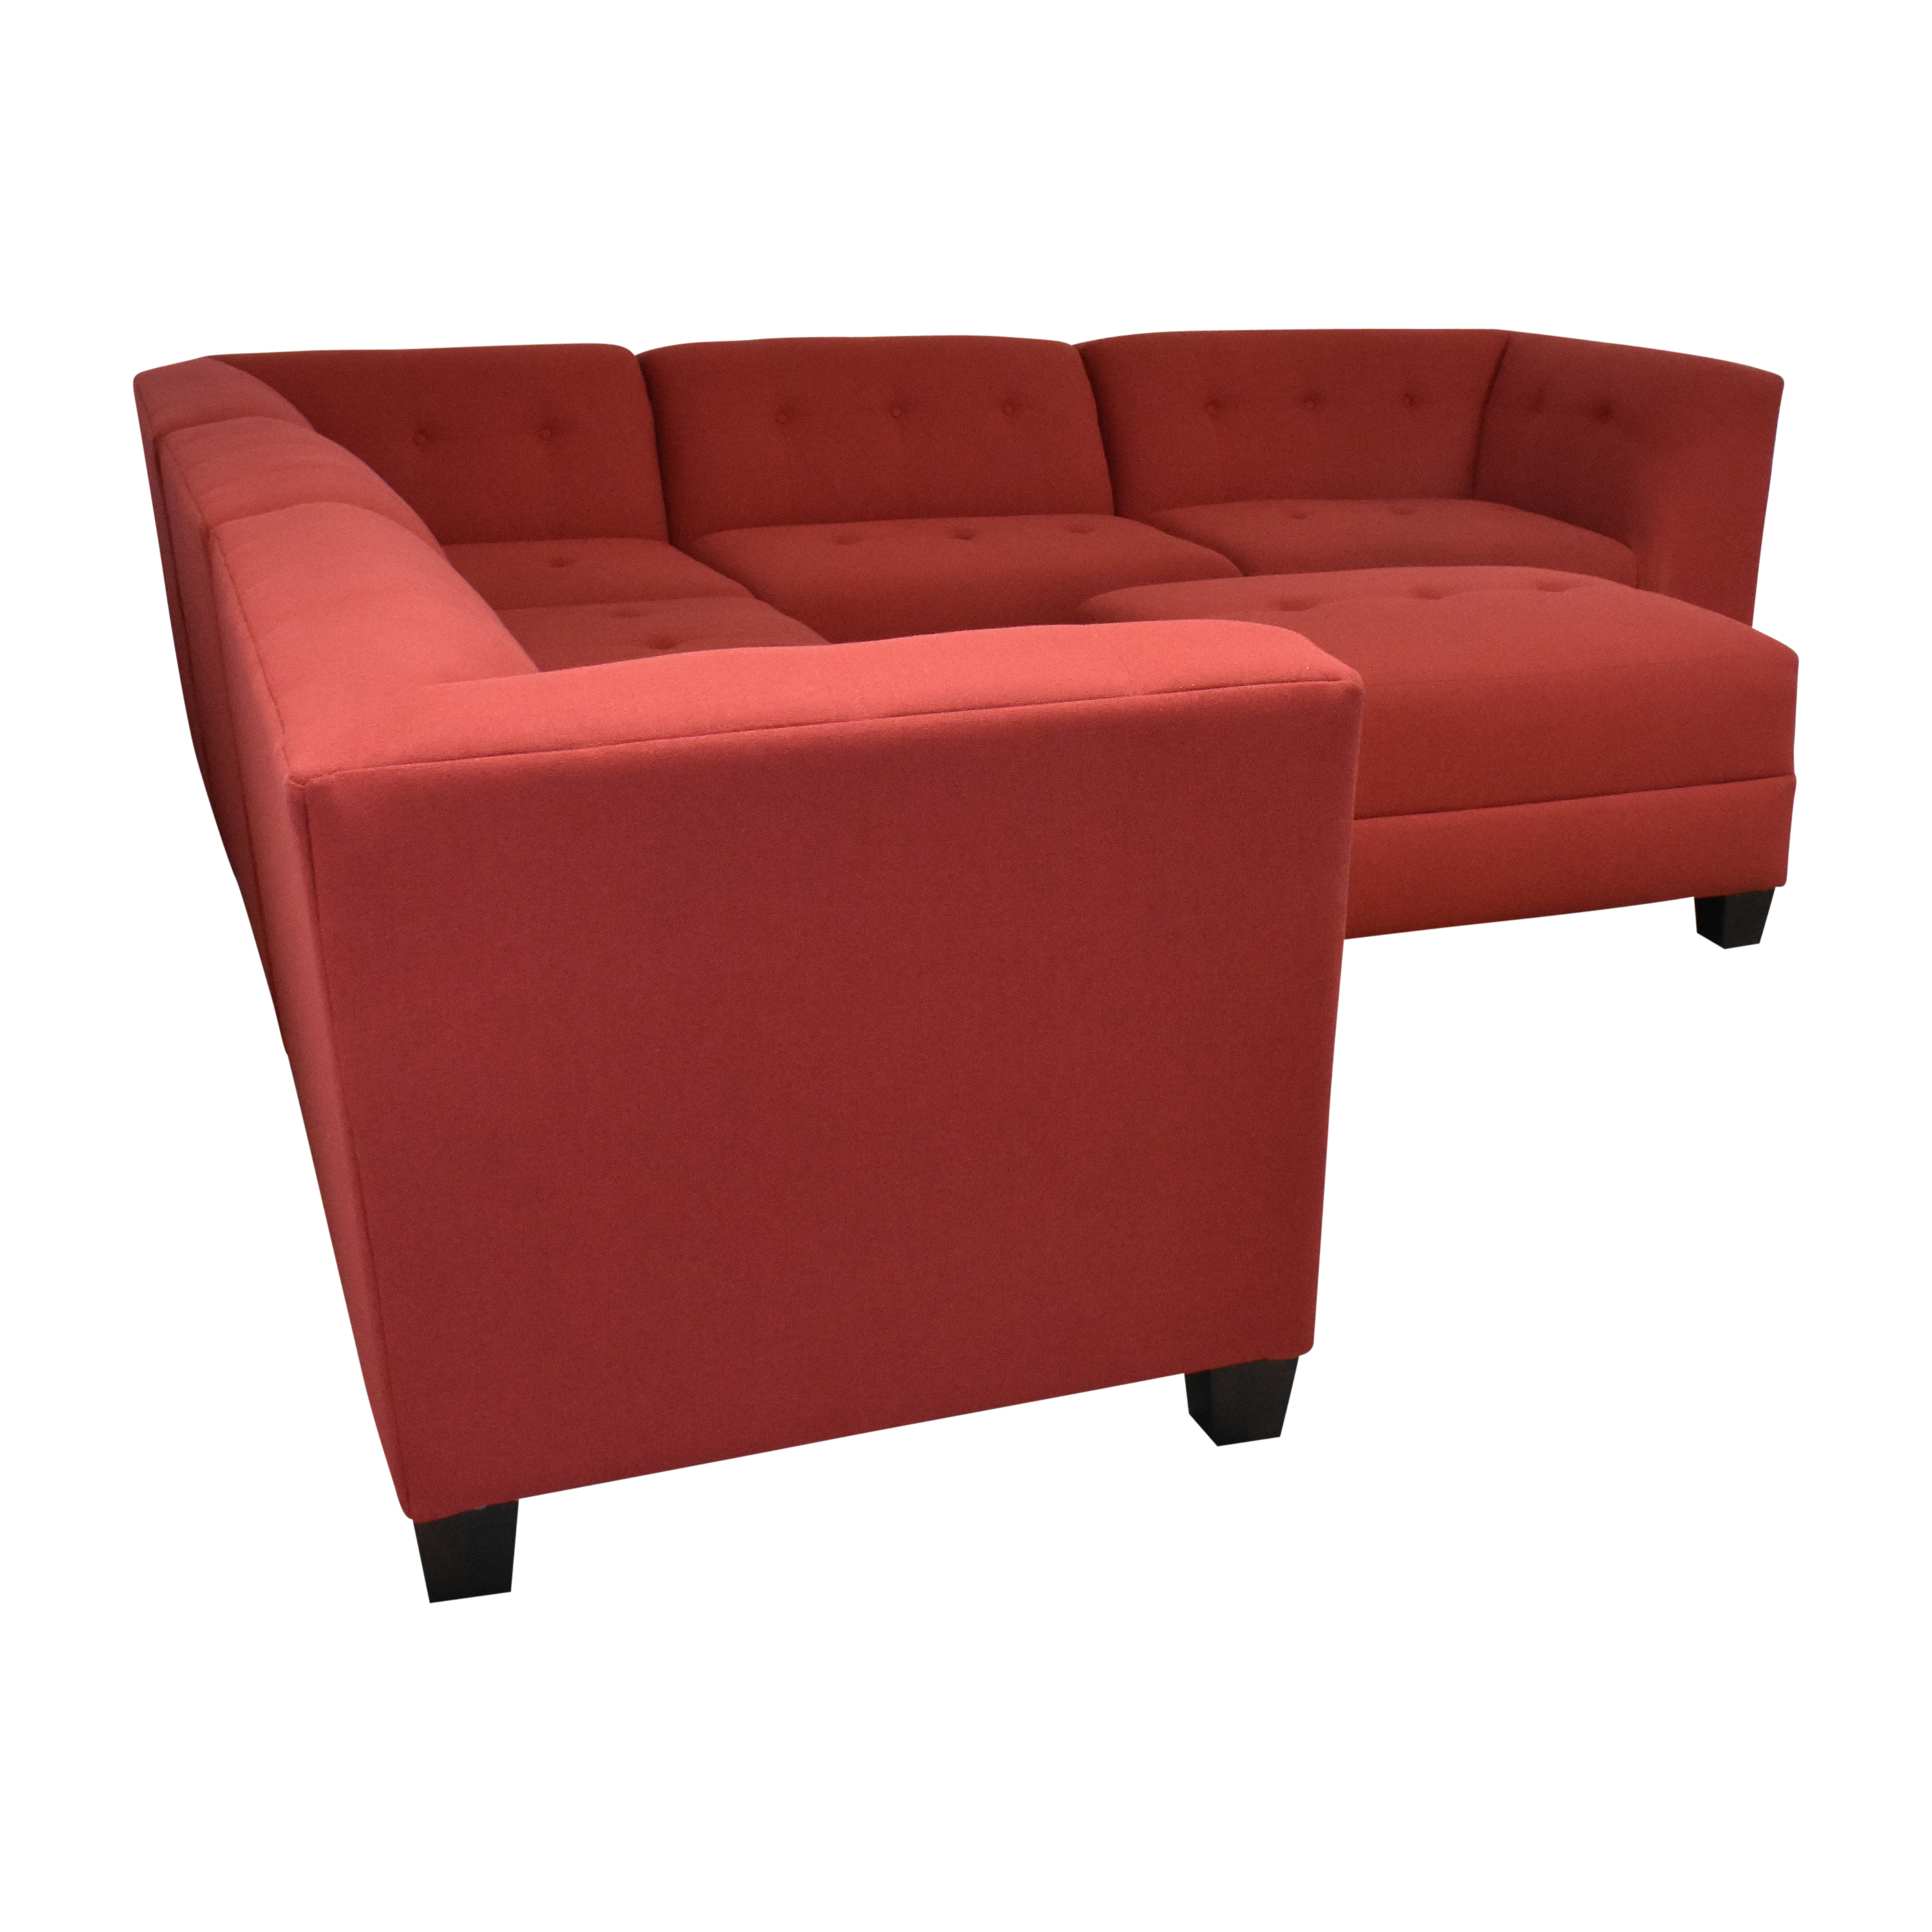 shop England Furniture Miller Five Piece Sectional Sofa with Ottoman England Furniture